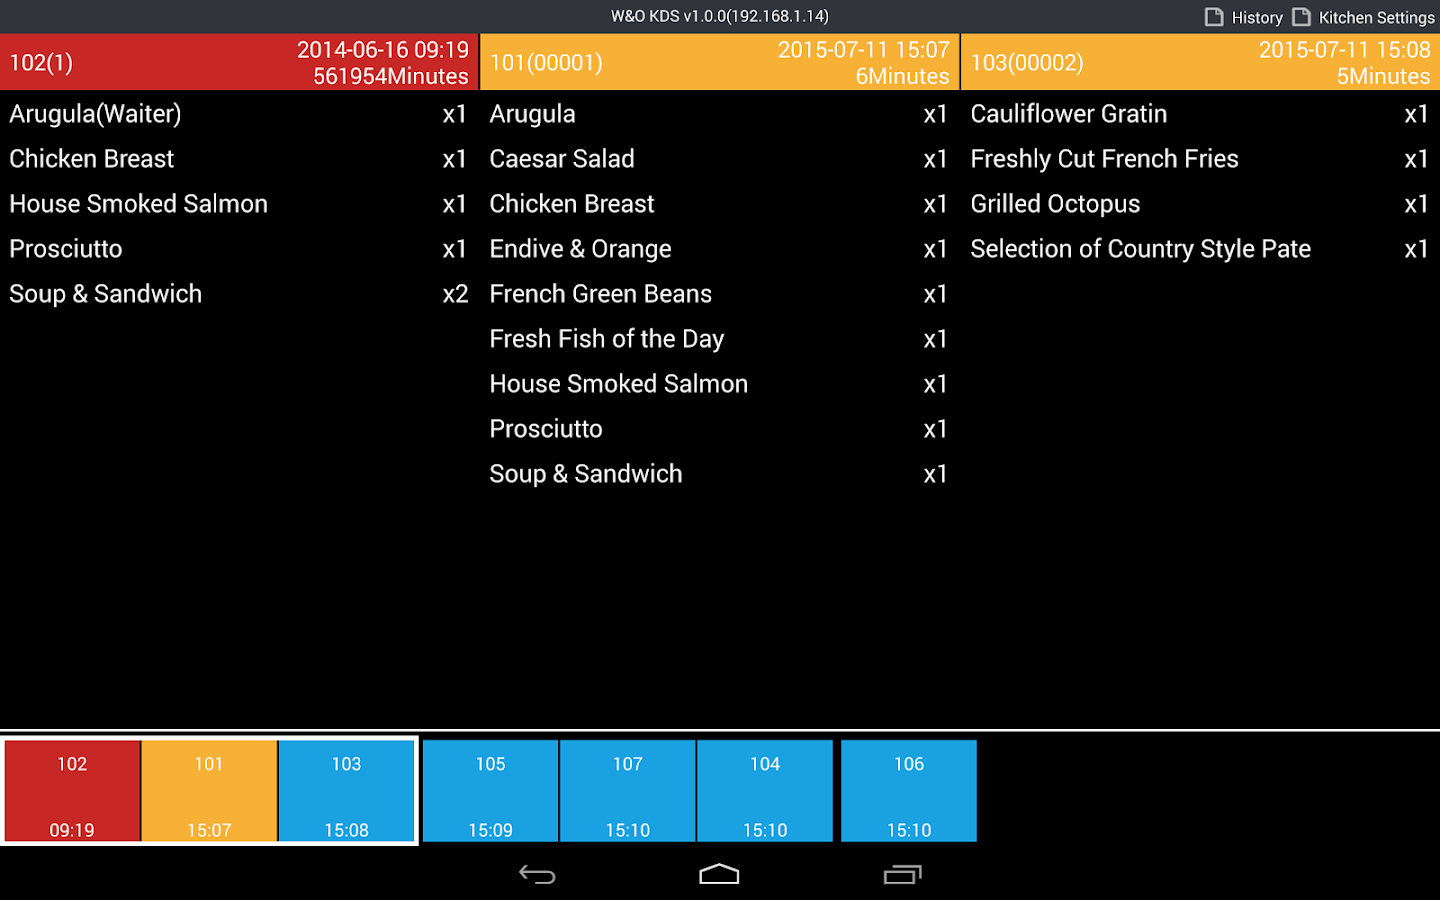 Restaurant Kitchen Order Display w&o kitchen display - kds - android apps on google play